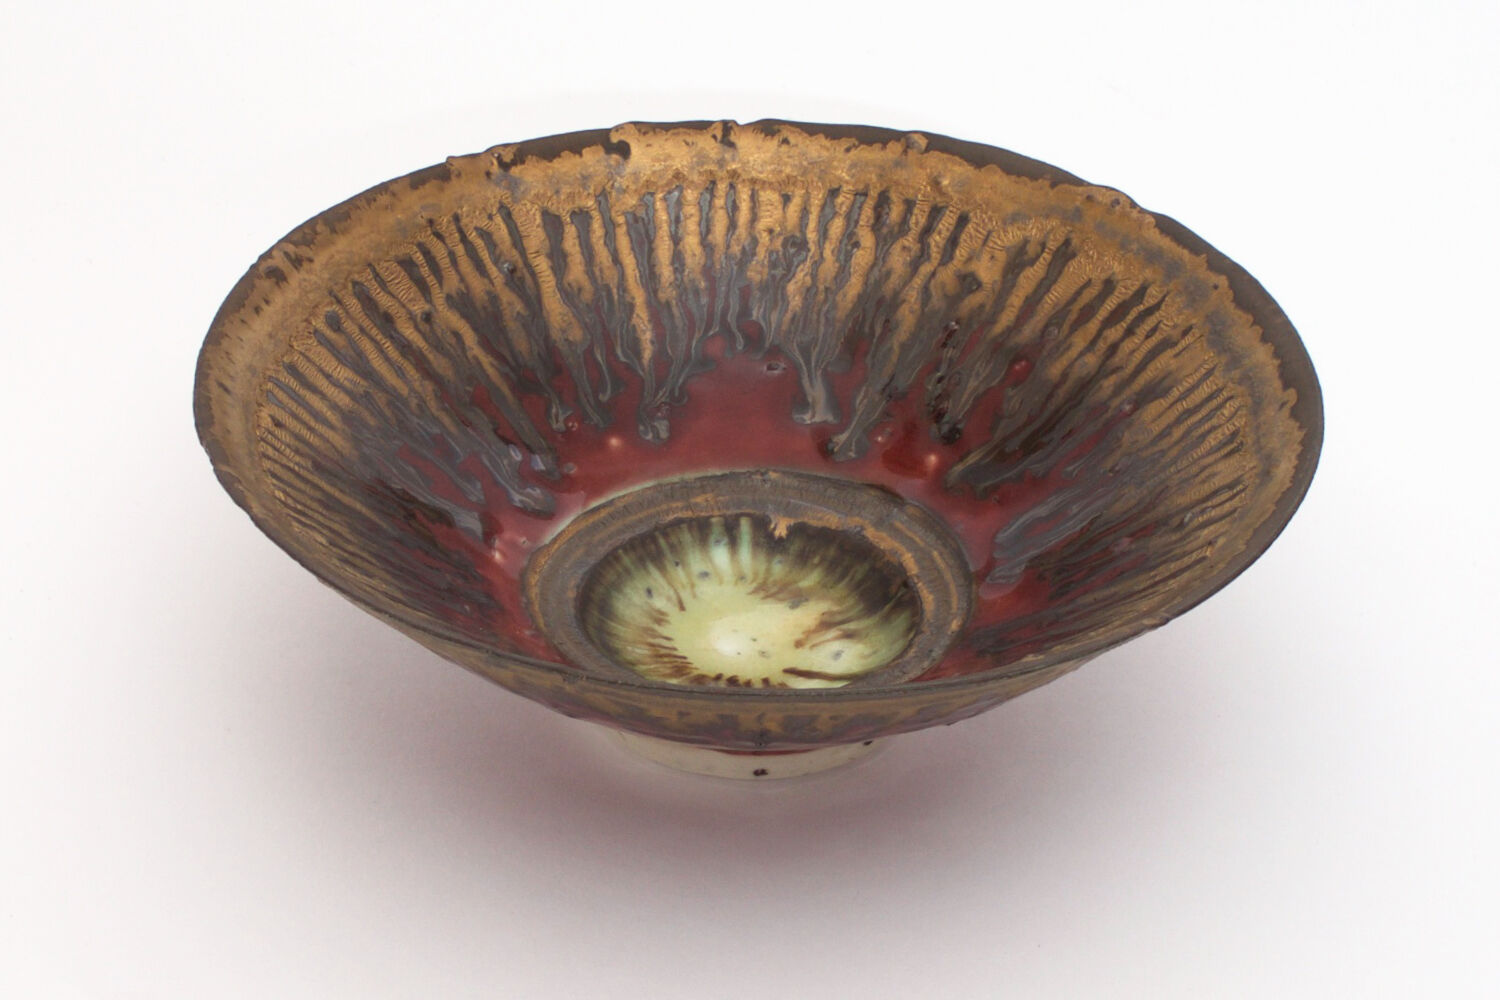 Peter Wills Porcelain Bowl 121